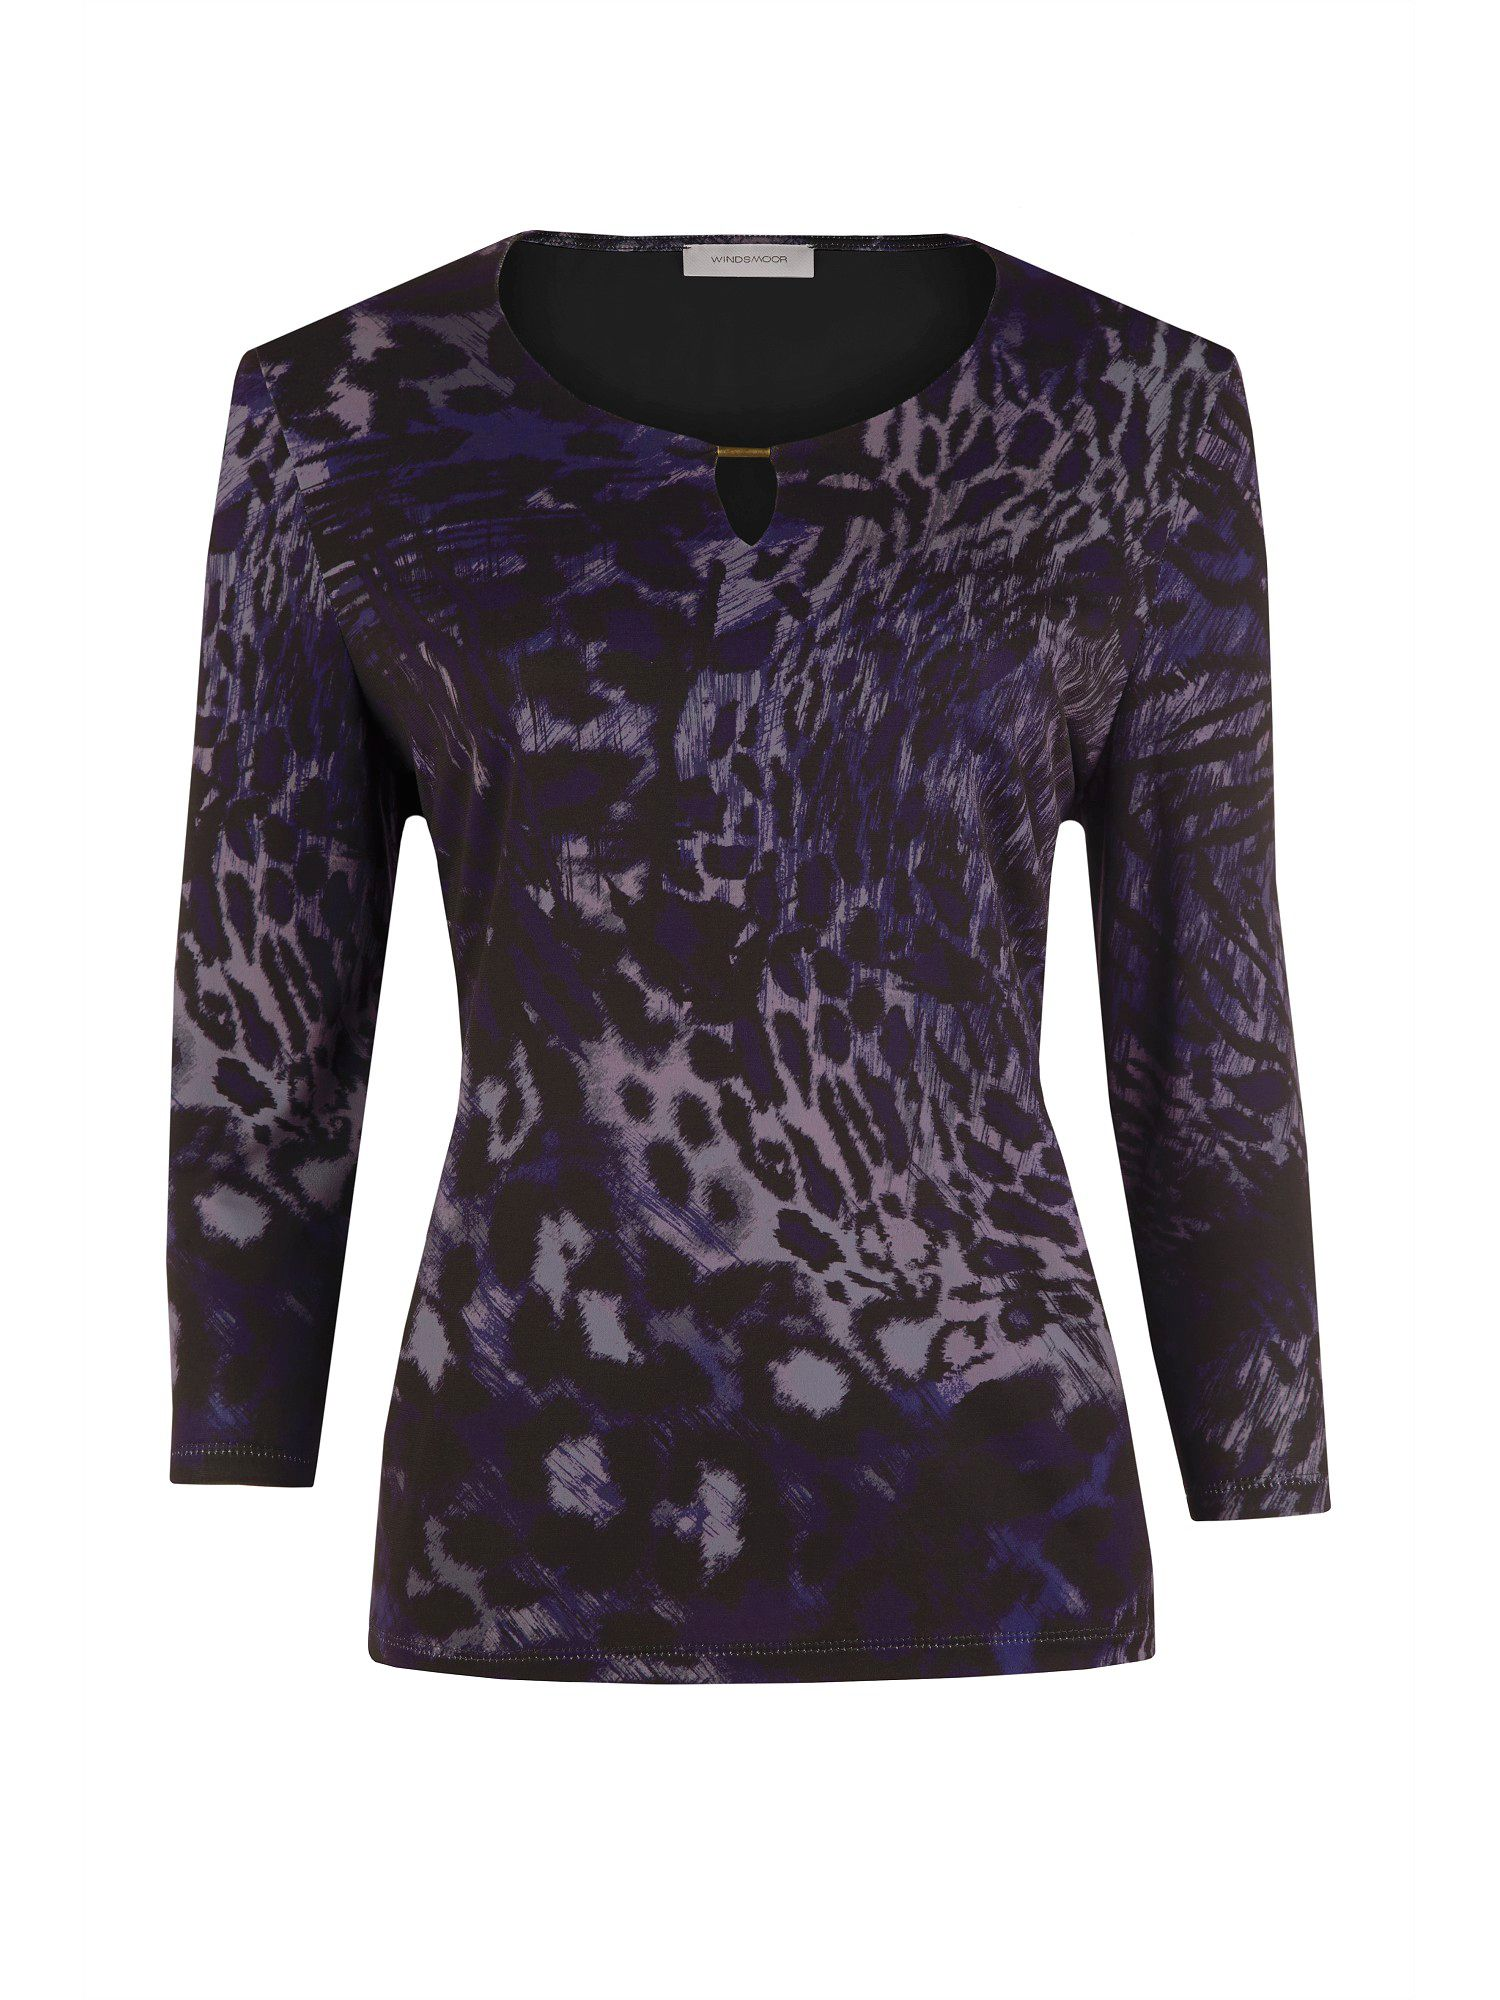 Abstract animal jersey top